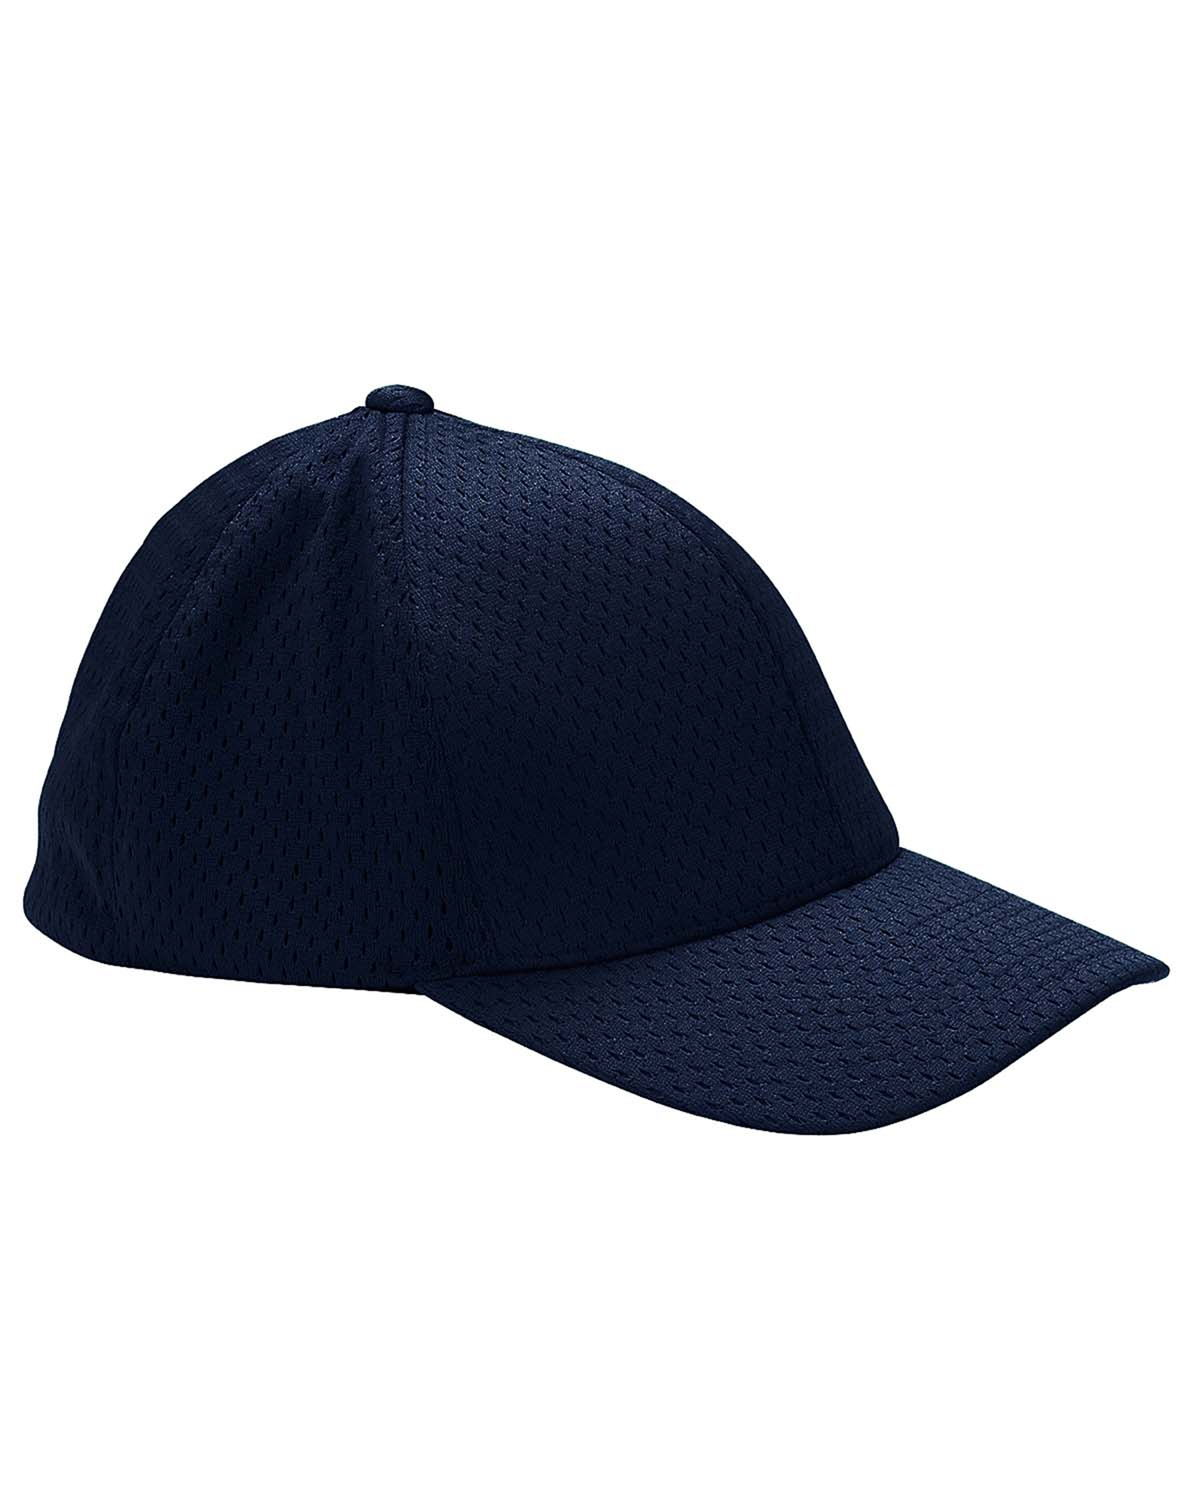 Flexfit 6777 - Adult Athletic Mesh Cap